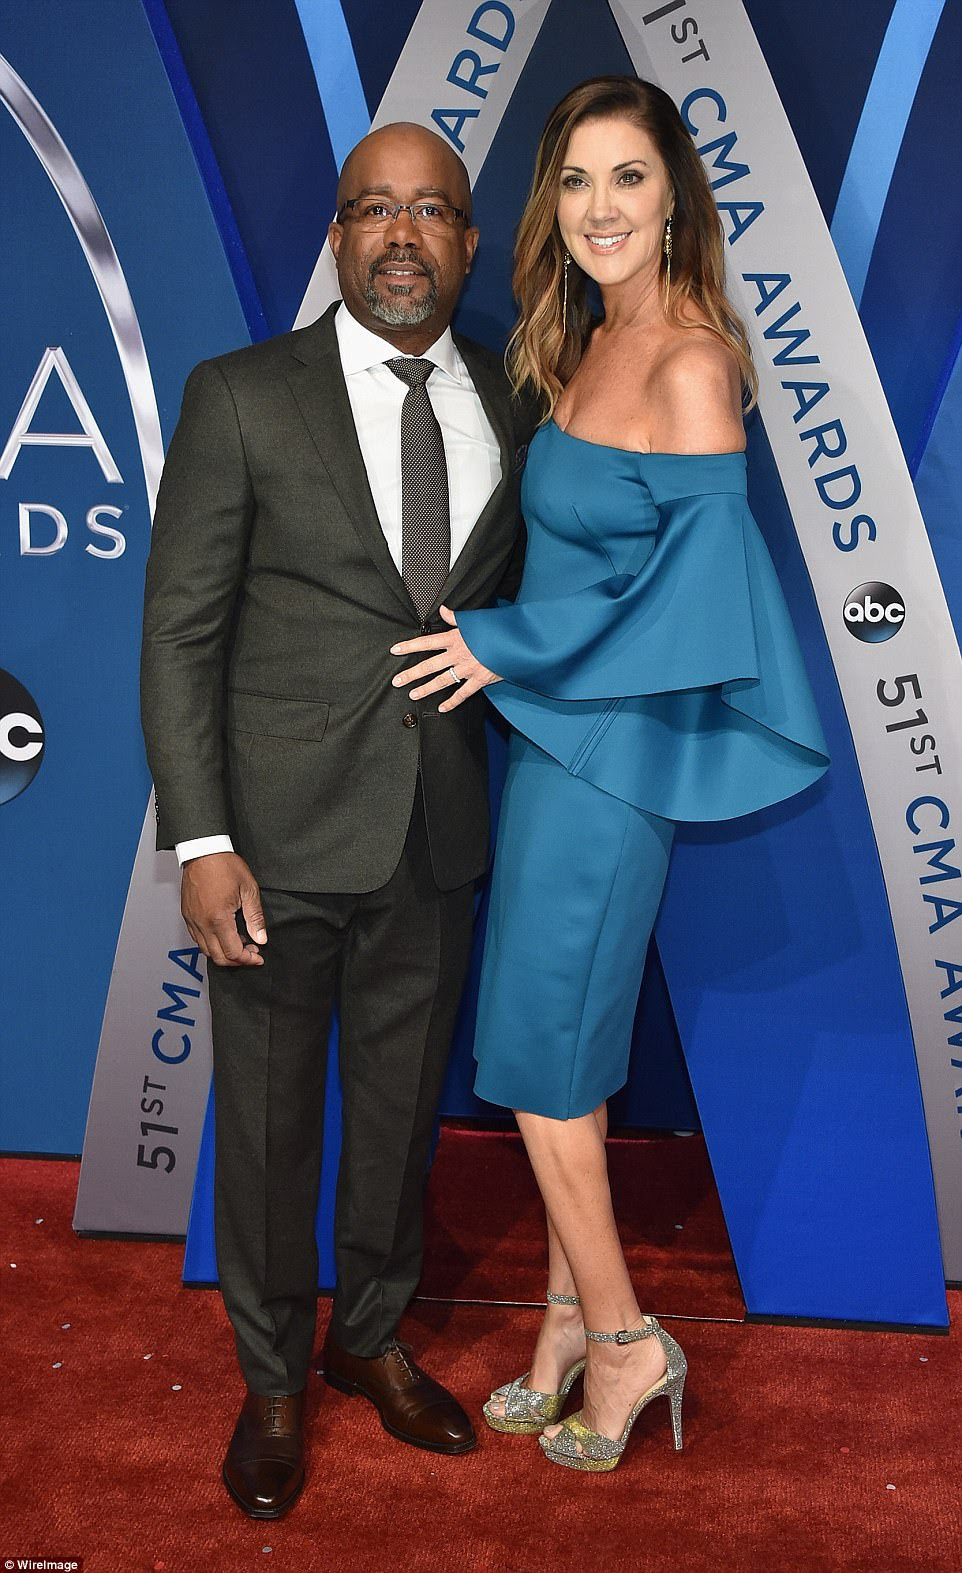 Aww! Hootie & The Blowfish hit-maker Darius Rucker cosied up to his wife, Beth Leonard